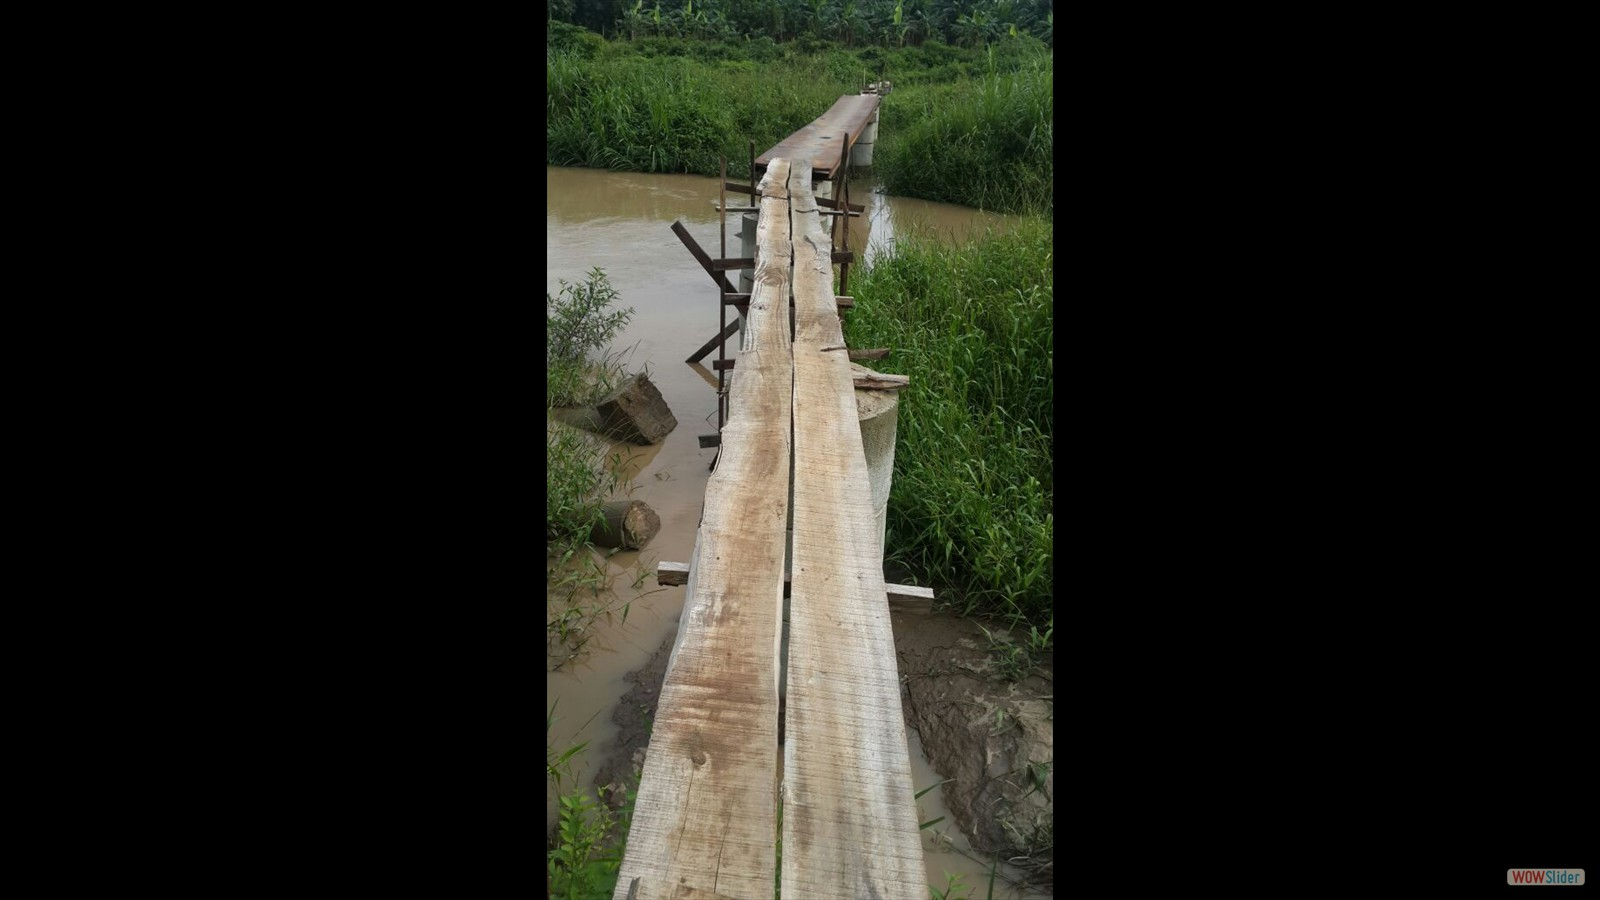 A footbridge has been built over the nearby river - summer 2016